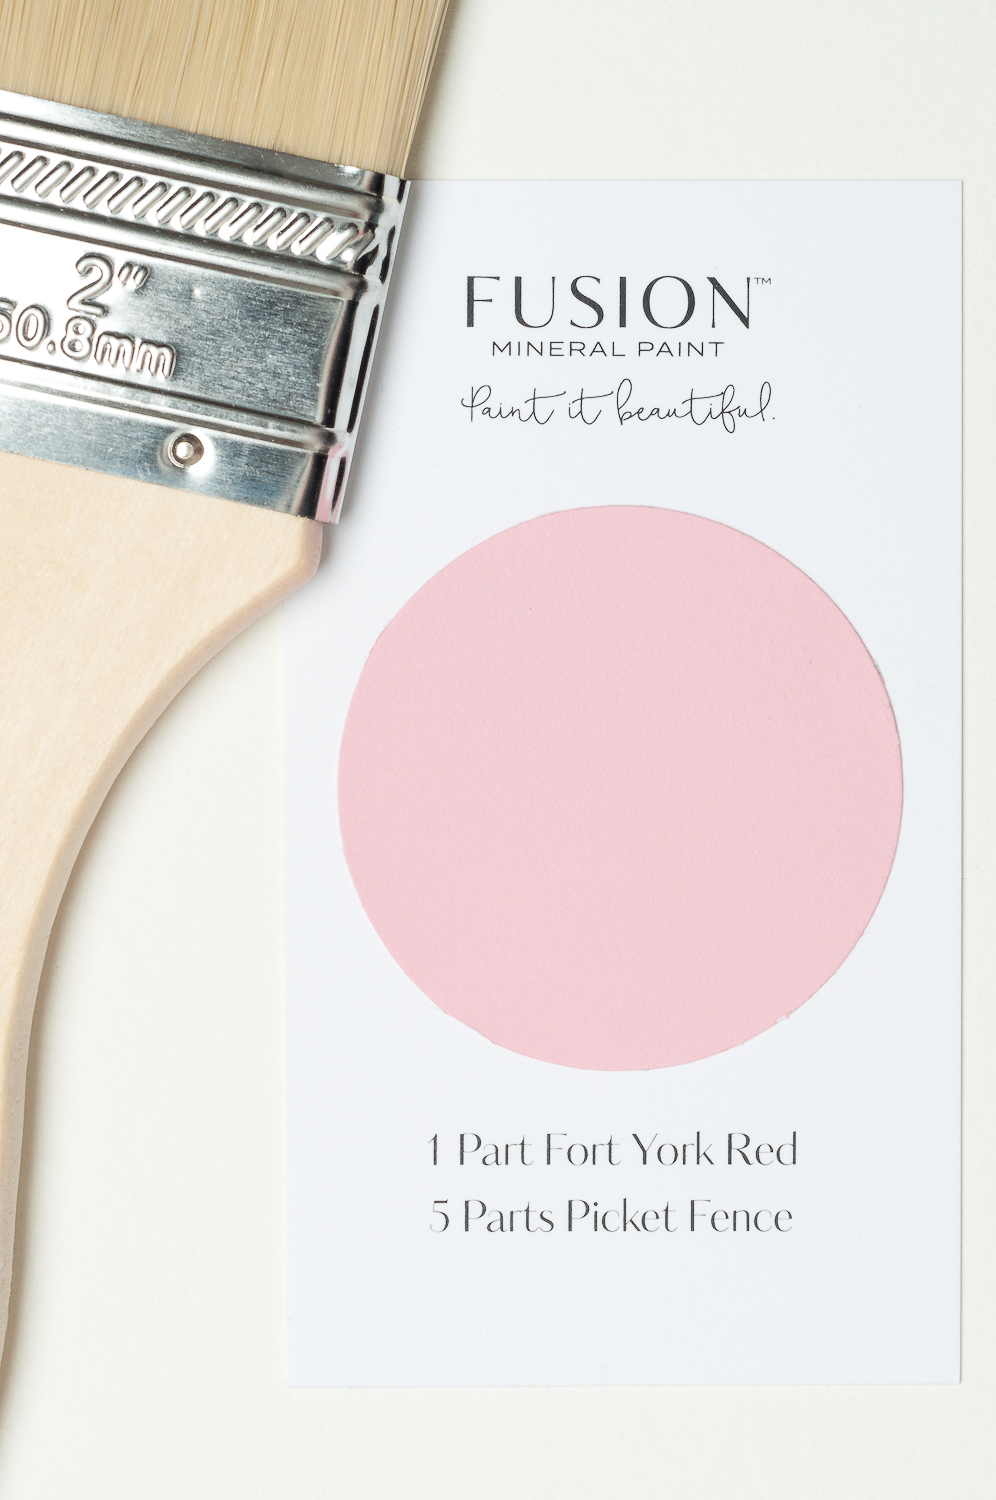 Isn't this pink lovely? It's simple to mix Fusion Mineral Paint to create your own custom paint colours. This little recipe card shows you how. There are 32 recipes to choose from! You can see all the custom blend recipes on my website.